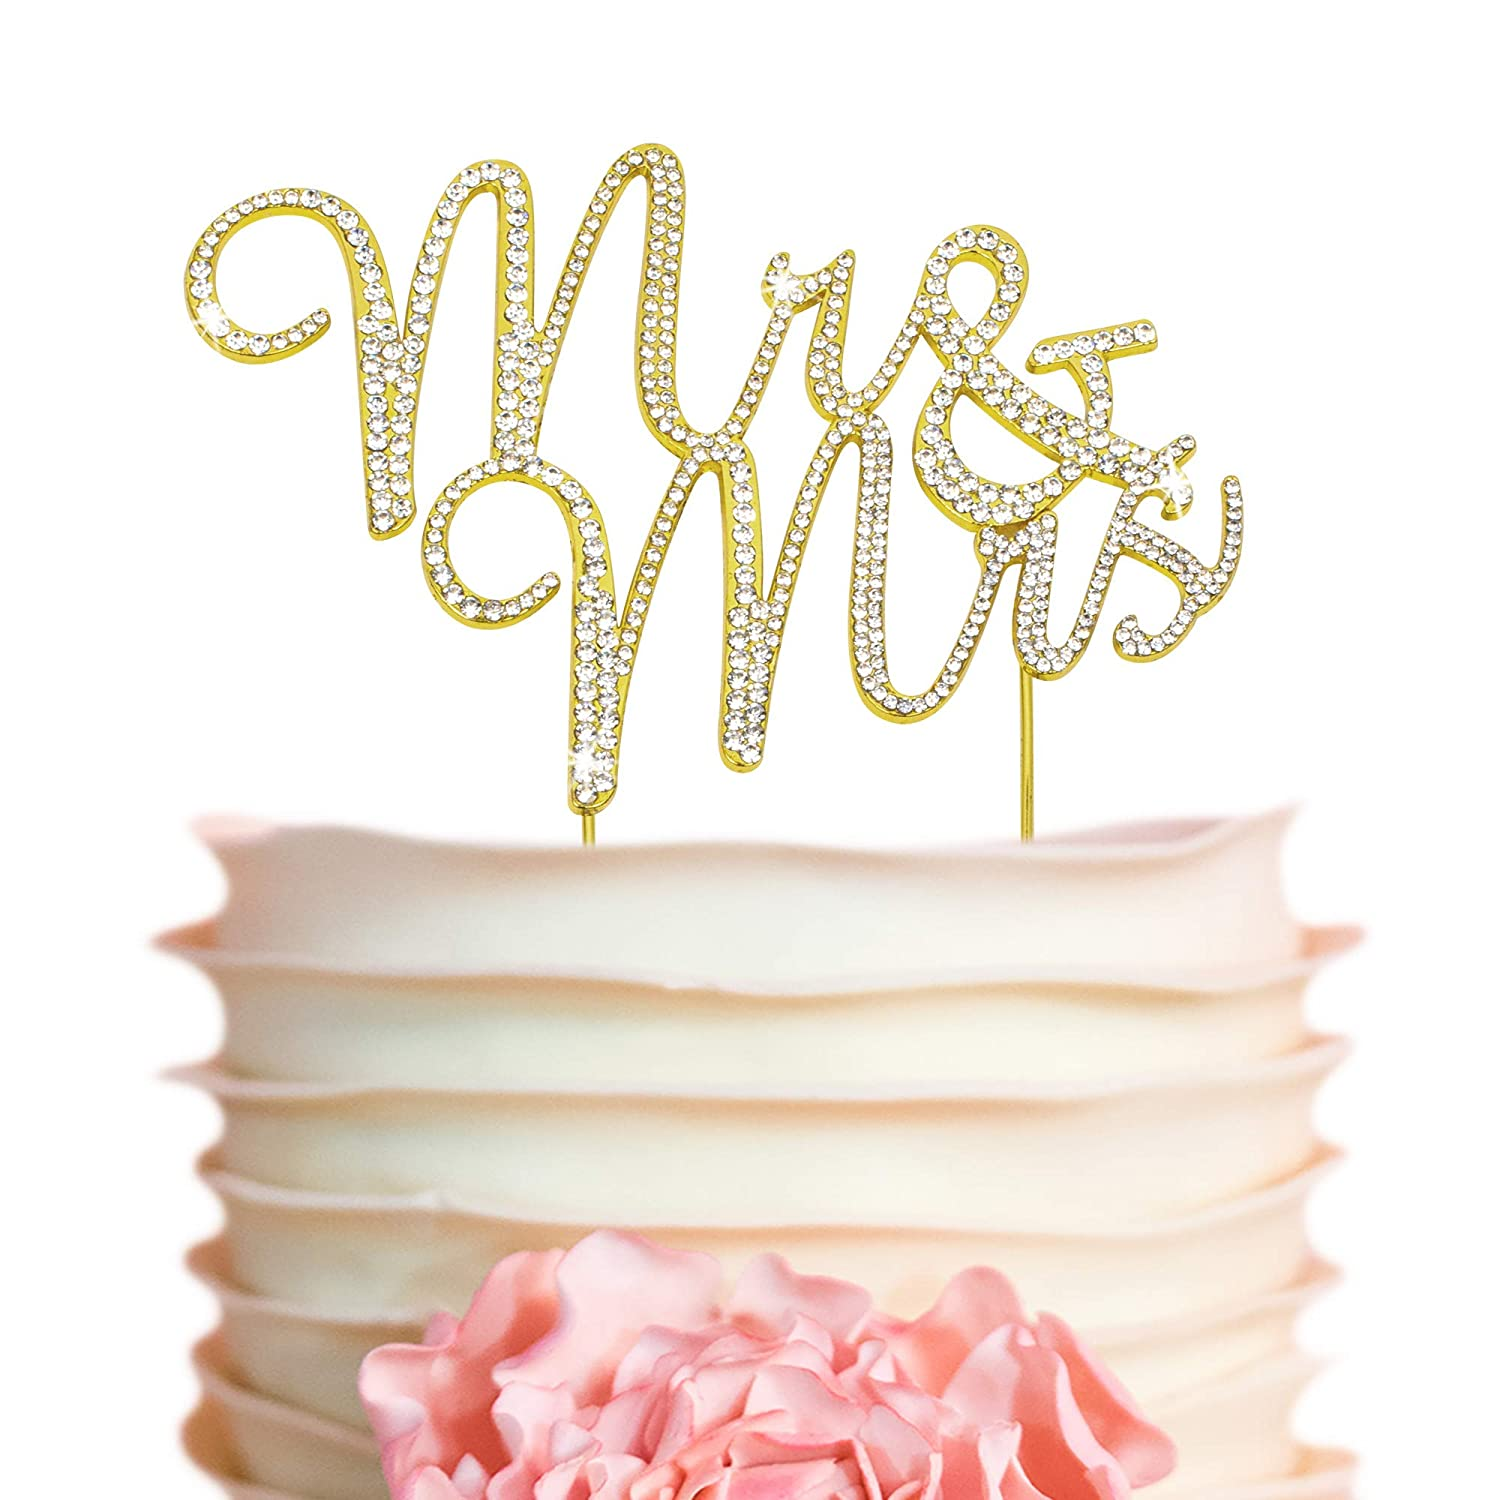 Mr And Mrs Wedding Cake Topper Premium Gold Metal Sparkly Wedding Or Anniversary Cake Topper Now Protected In A Box Amazon Com Grocery Gourmet Food